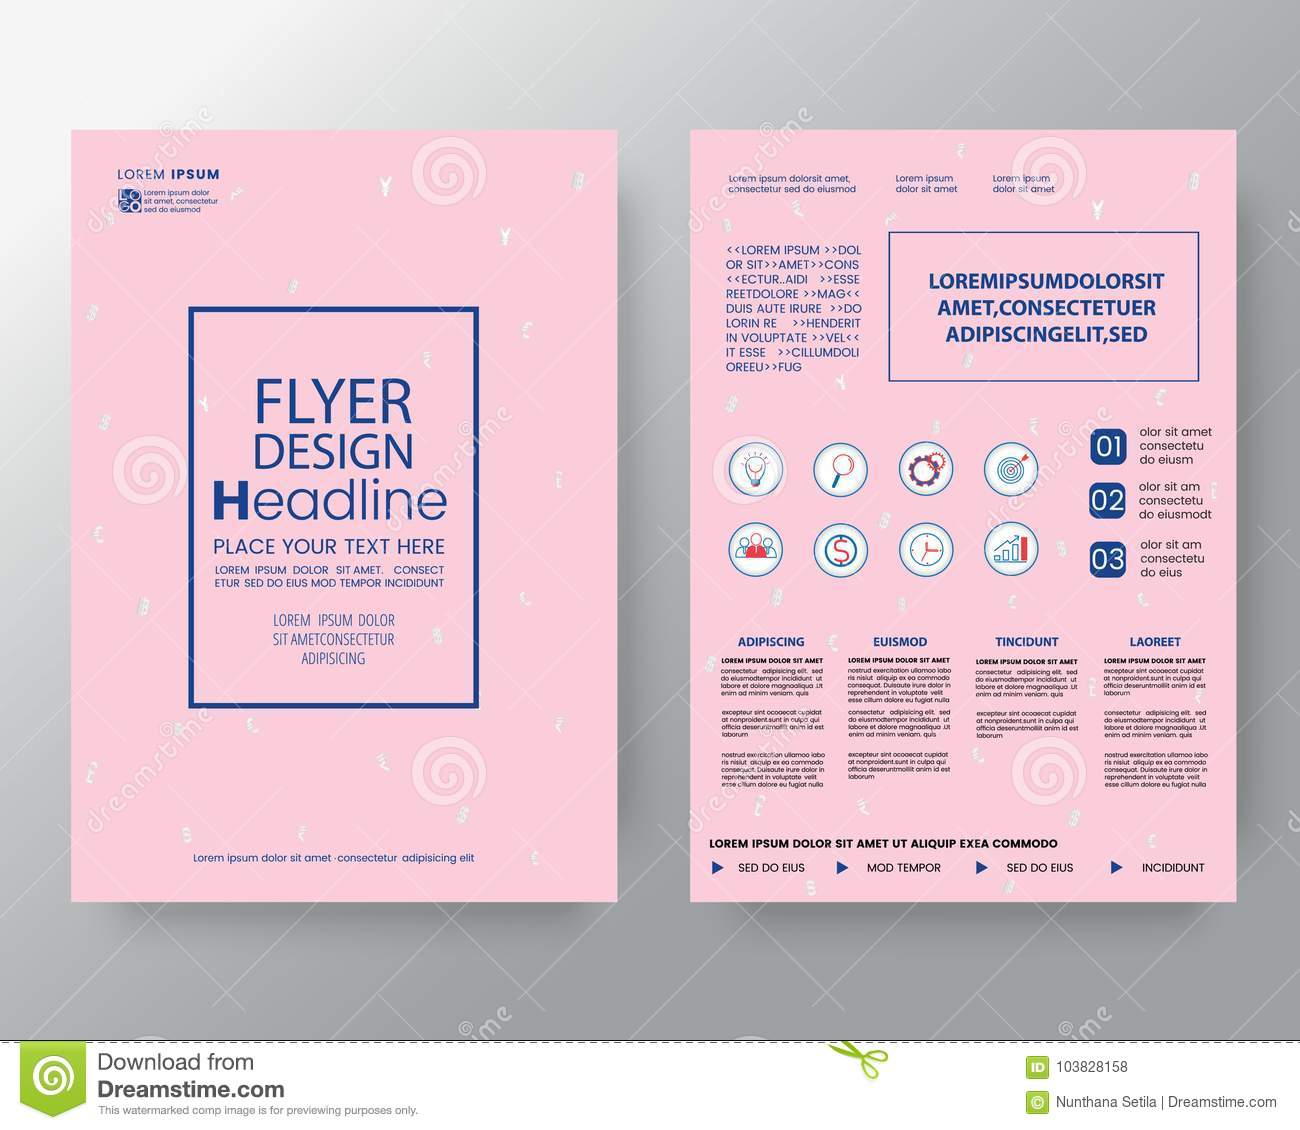 Memphis art background for Corporate Identity, Brochure annual report cover Flyer Poster design Layout vector template in A4 size